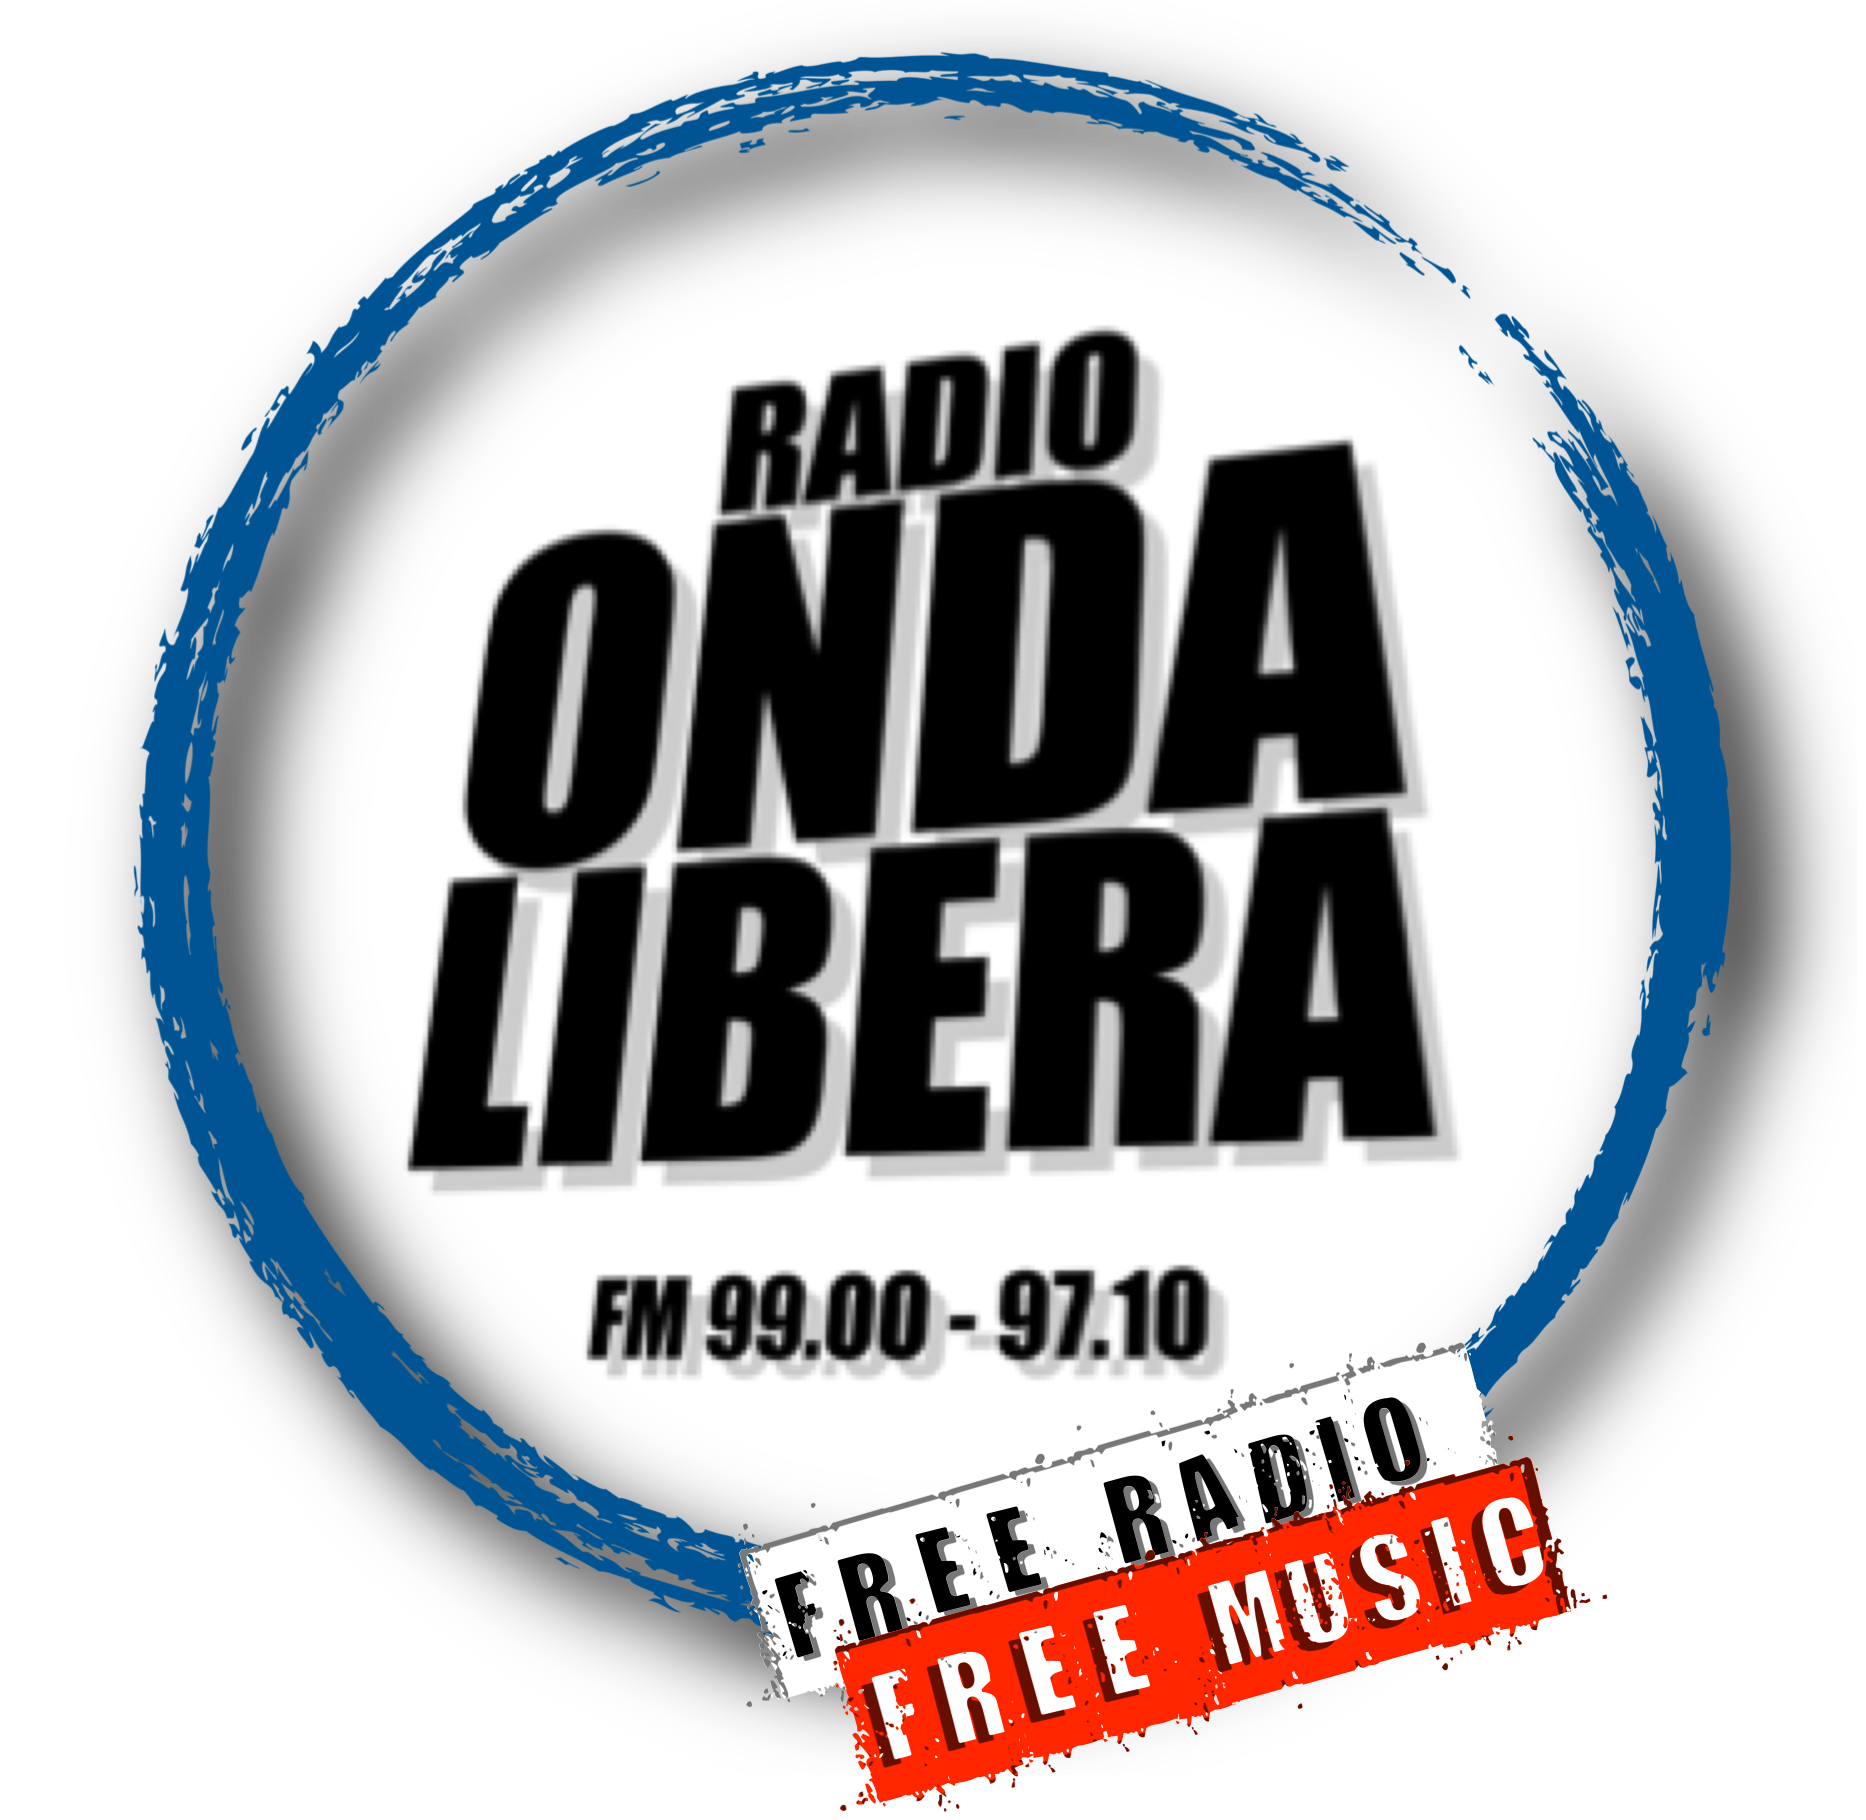 Radio Onda Libera